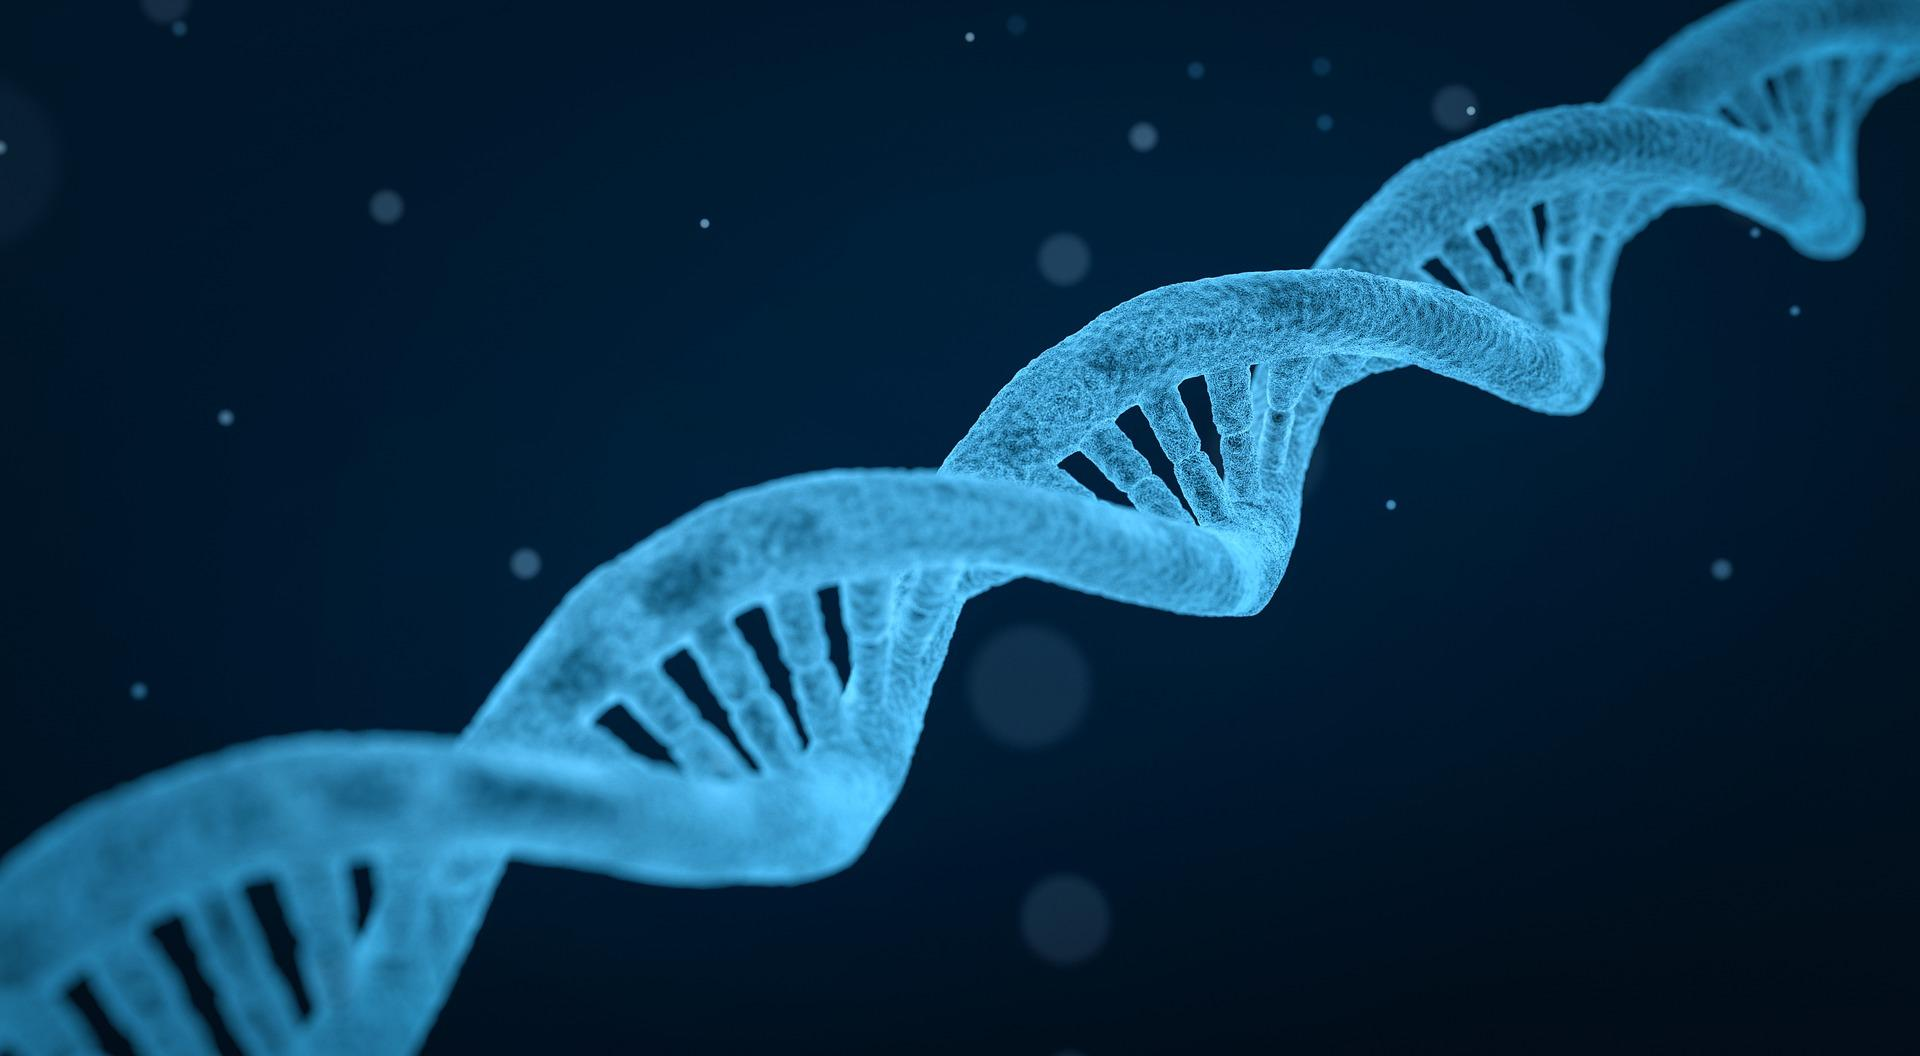 Blue double helix DNA strand on dark blue background